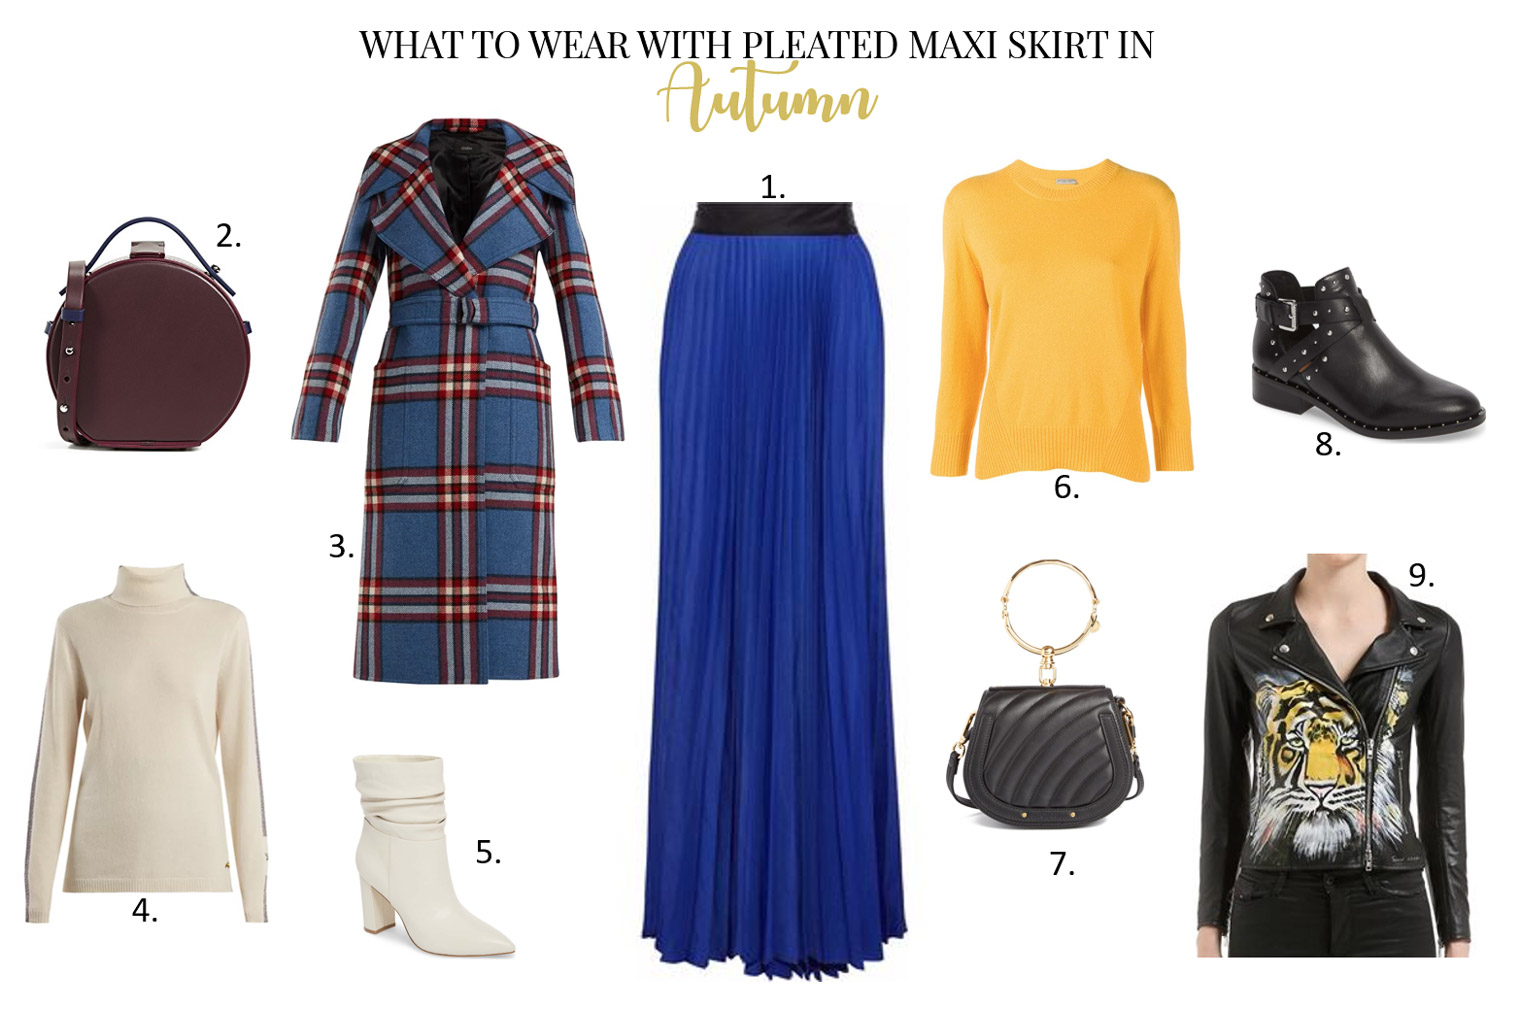 What to wear with pleated maxi skirt in the fall